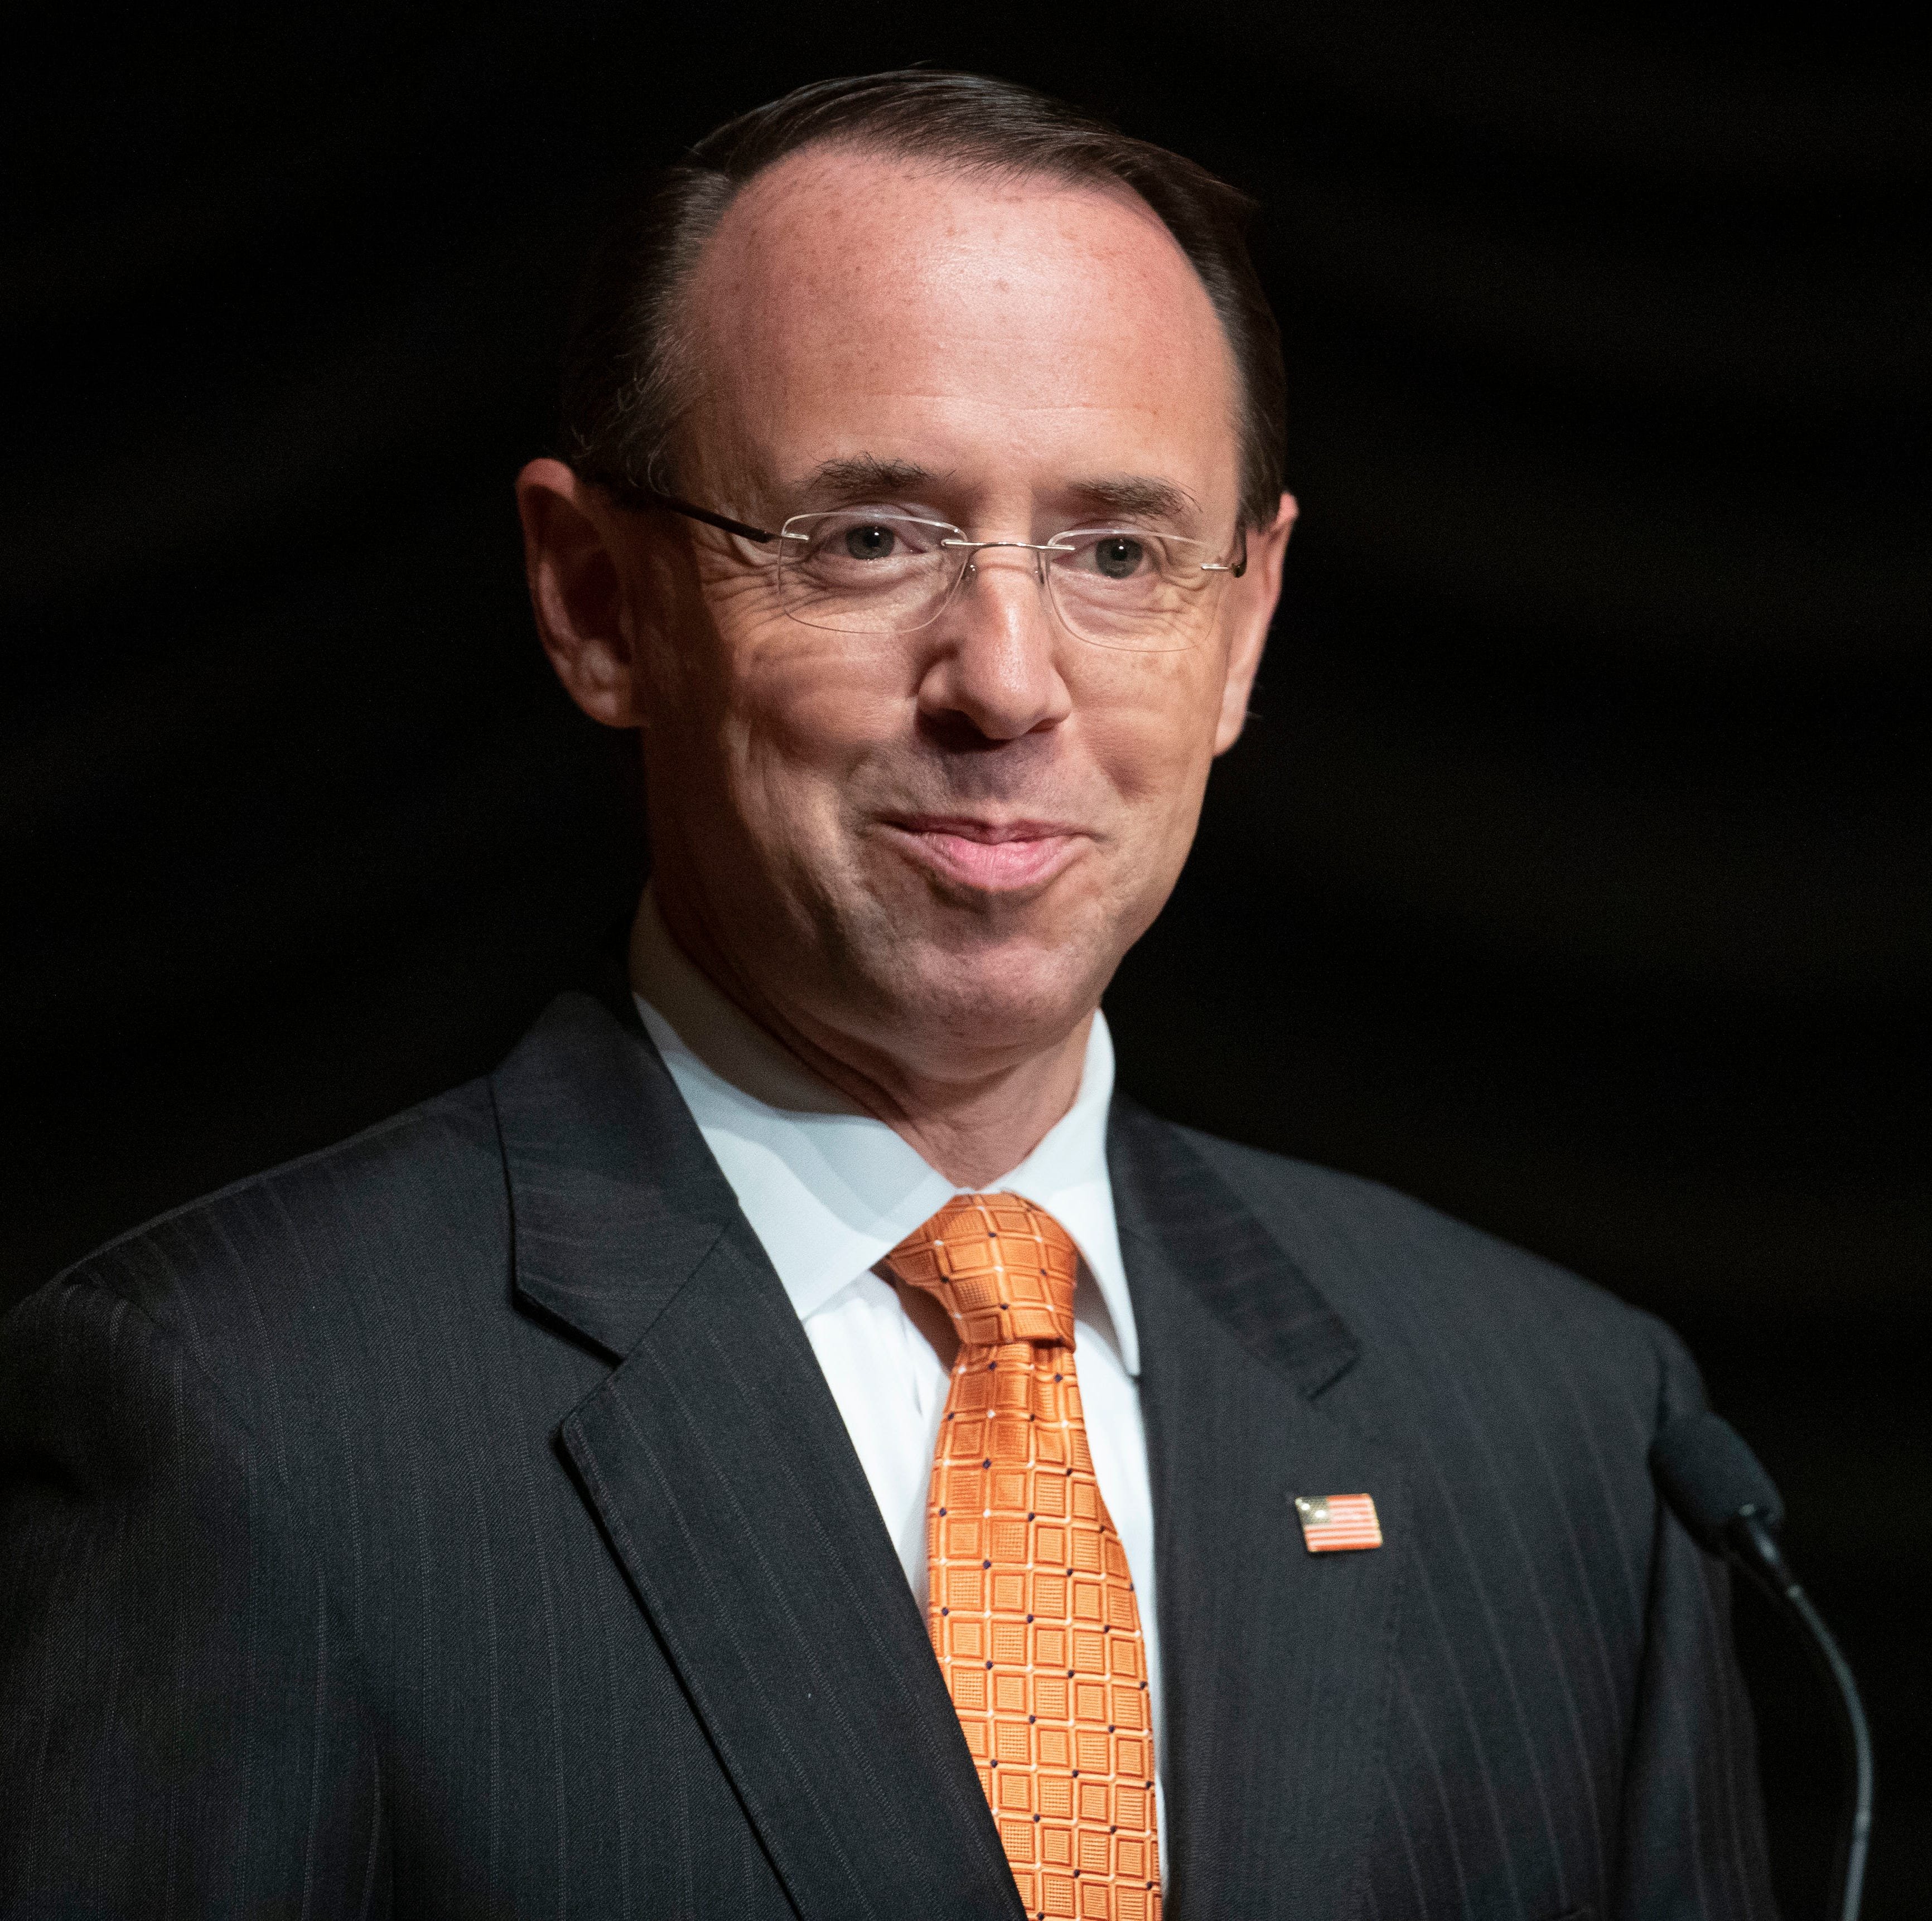 Deputy Attorney General Rod Rosenstein pauses while speaking Oct. 17, 2018, at the federal inspector general community's 21st annual awards ceremony, in Washington.